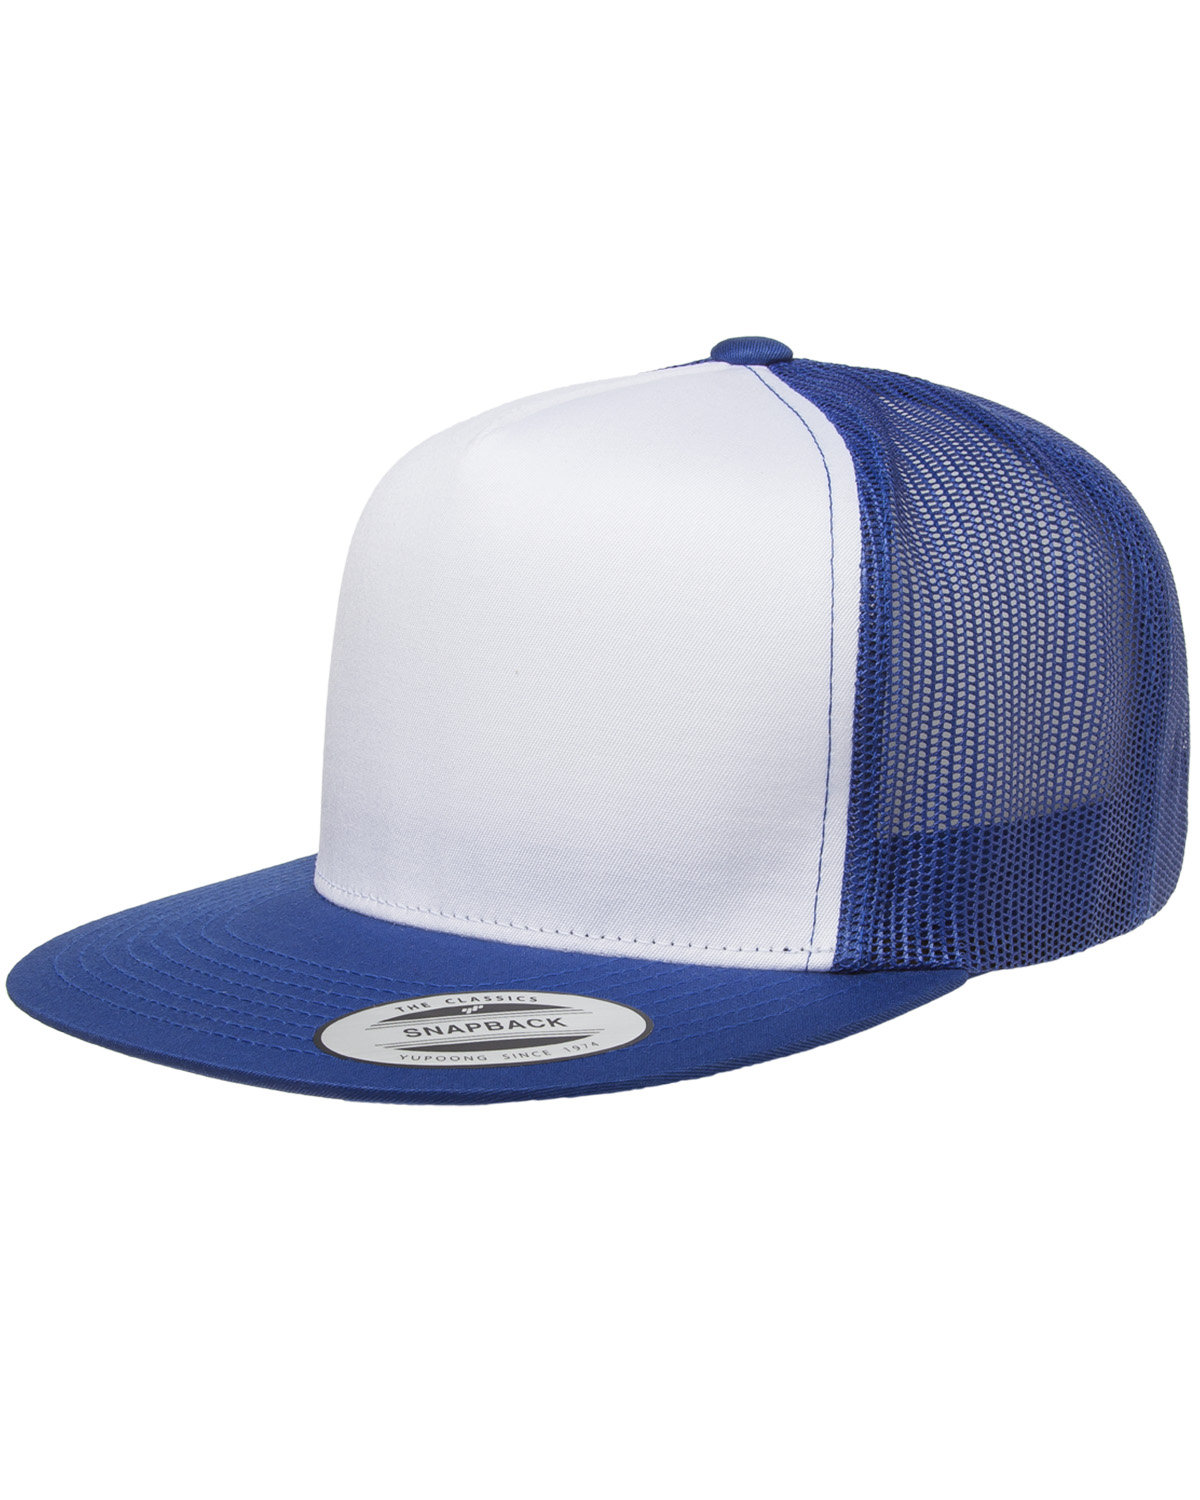 Yupoong Adult Classic Trucker with White Front Panel Cap ROYAL/ WHT/ ROYL